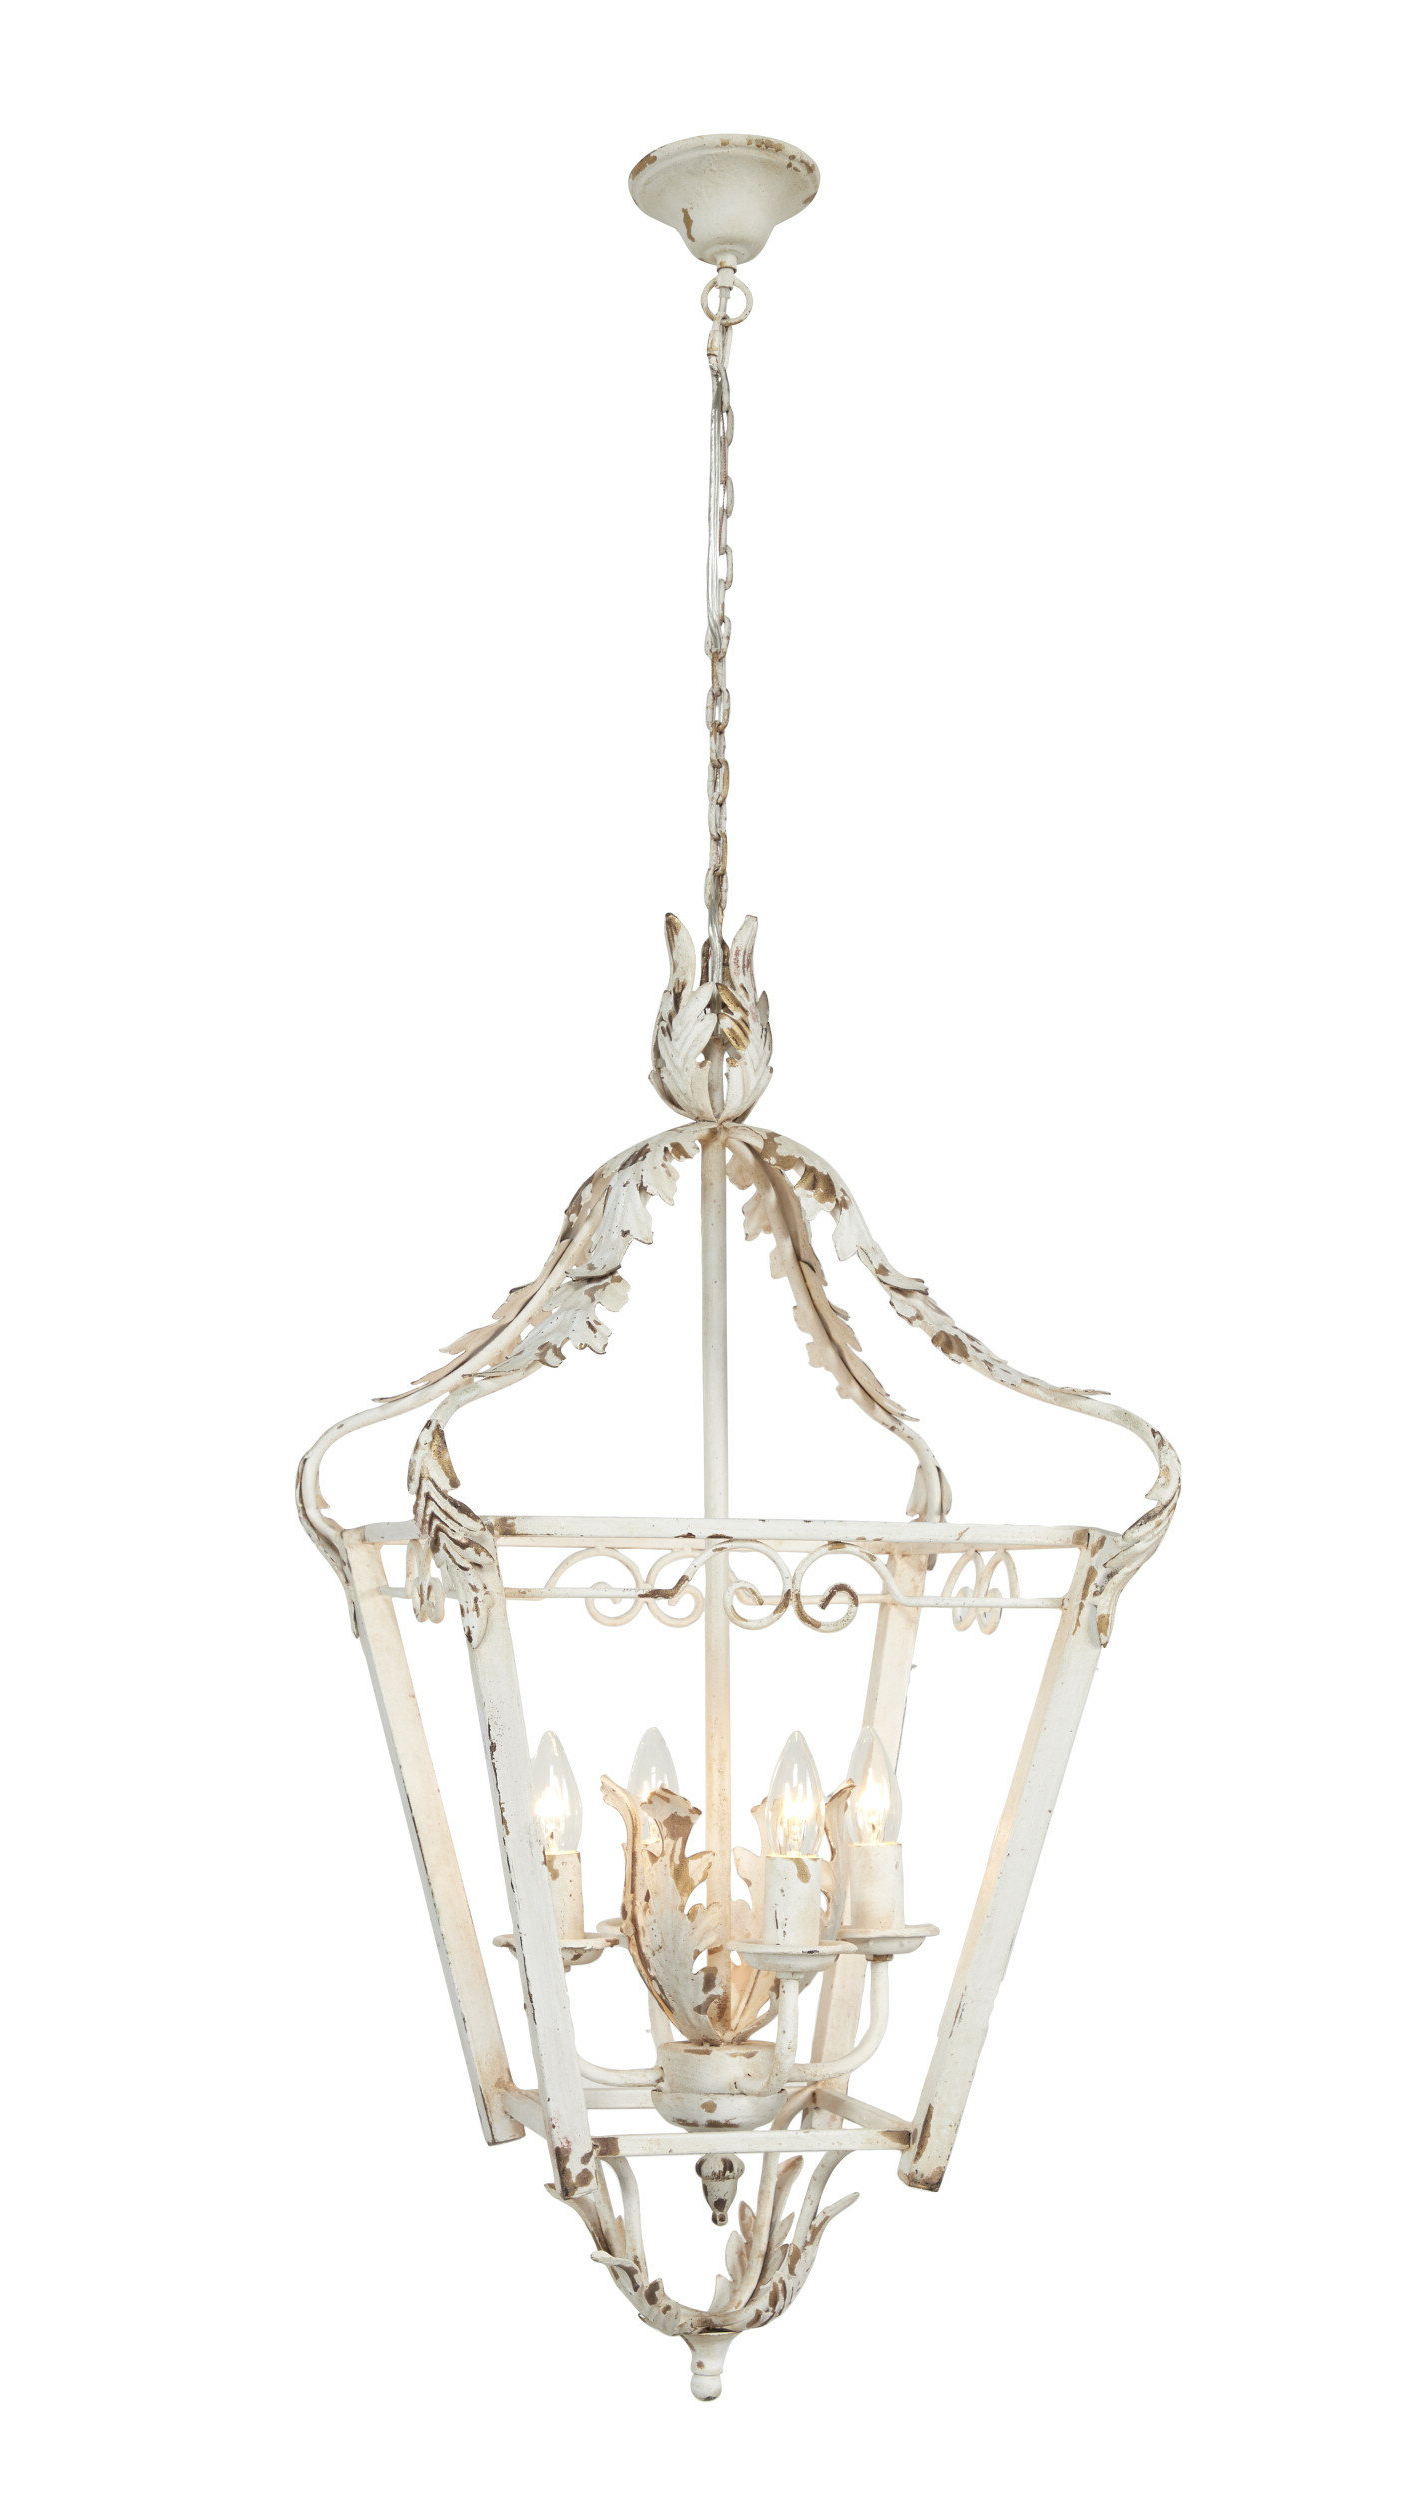 Conte Small Metal 4 Light Lantern Chandelier Pertaining To Best And Newest Tiana 4 Light Geometric Chandeliers (View 6 of 20)